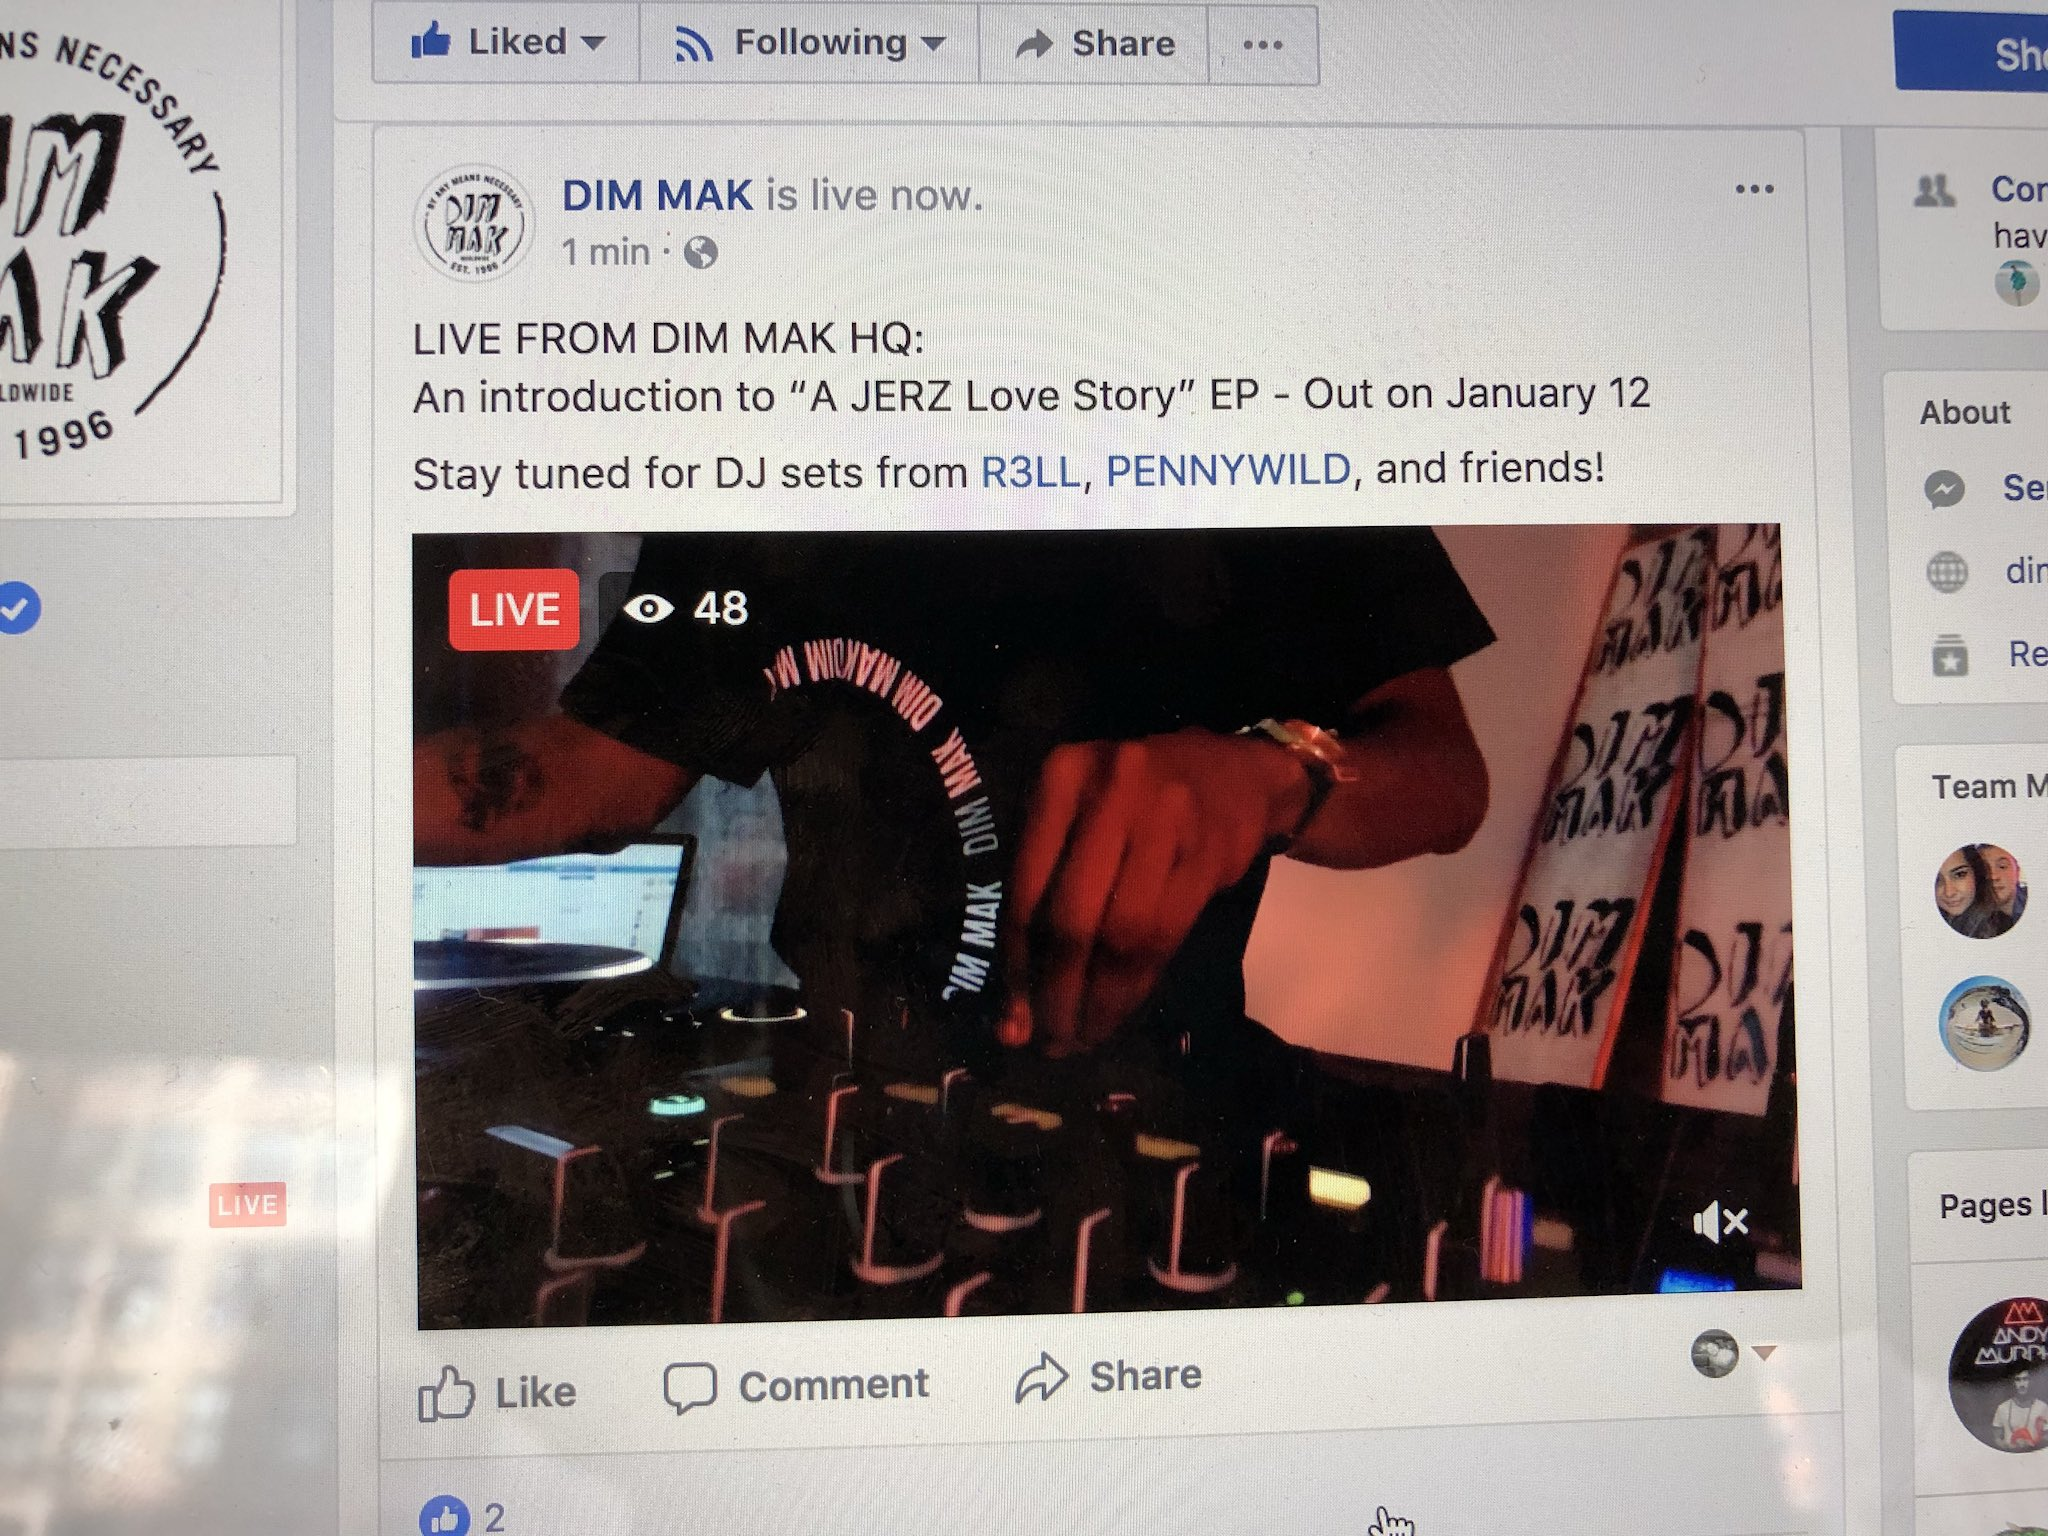 We're live on Facebook with @itsR3LL from the Dim Mak office!! https://t.co/QD4RTkt2LD #JERZ https://t.co/R7ob5X7169